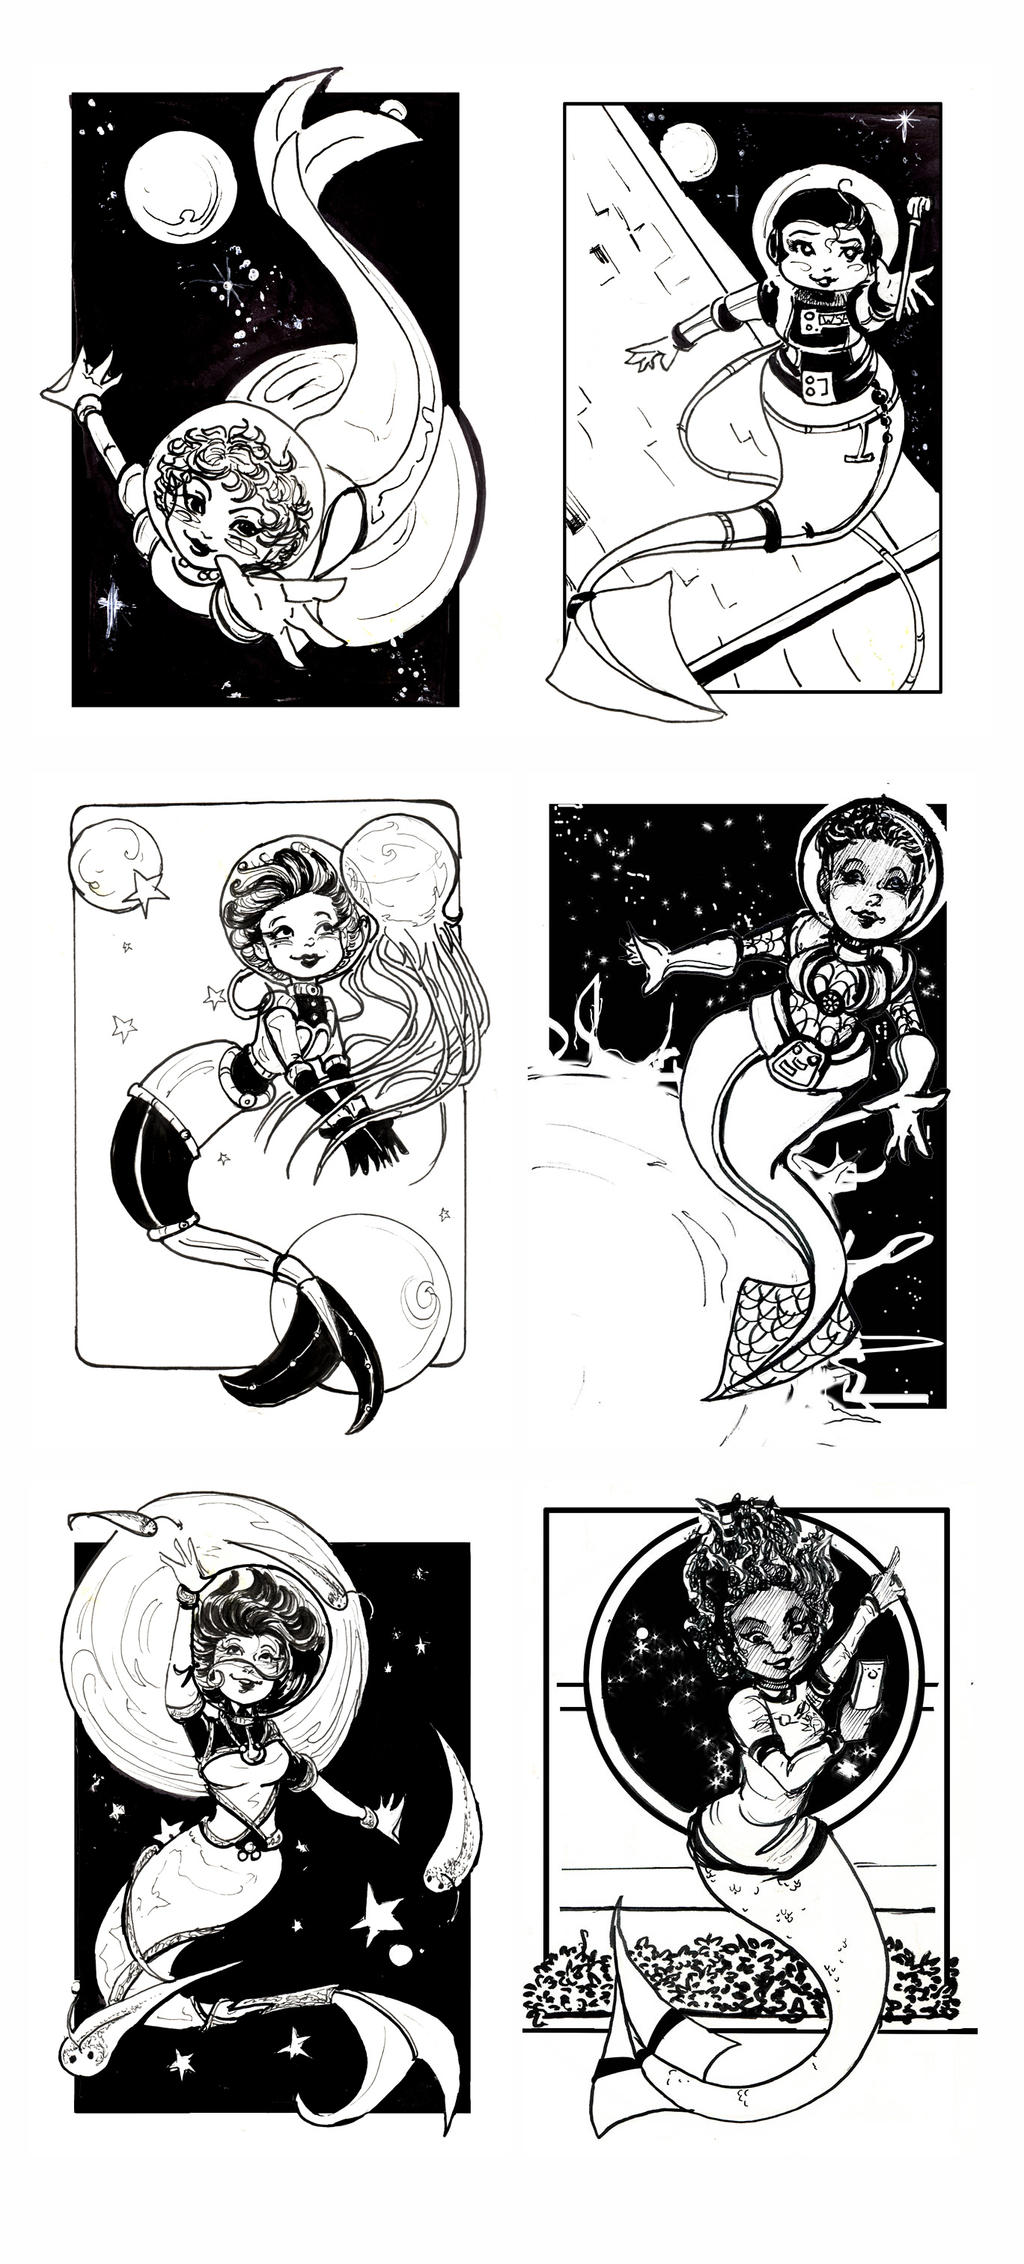 Space Mermaids 2016 by GalacticDustBunnies